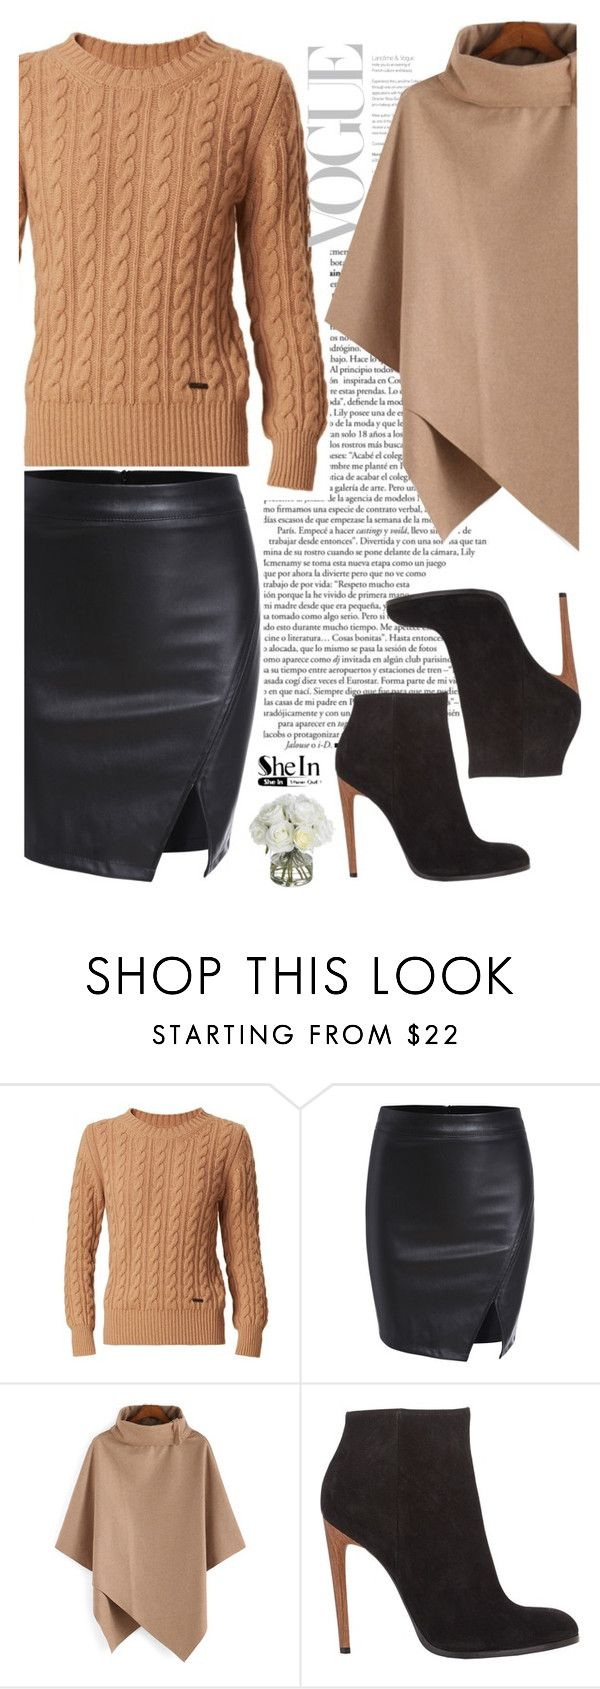 """""""Black & Camel"""" by pamela-802 ❤ liked on Polyvore featuring Burberry, Haider Ackermann, Diane James and skirt"""